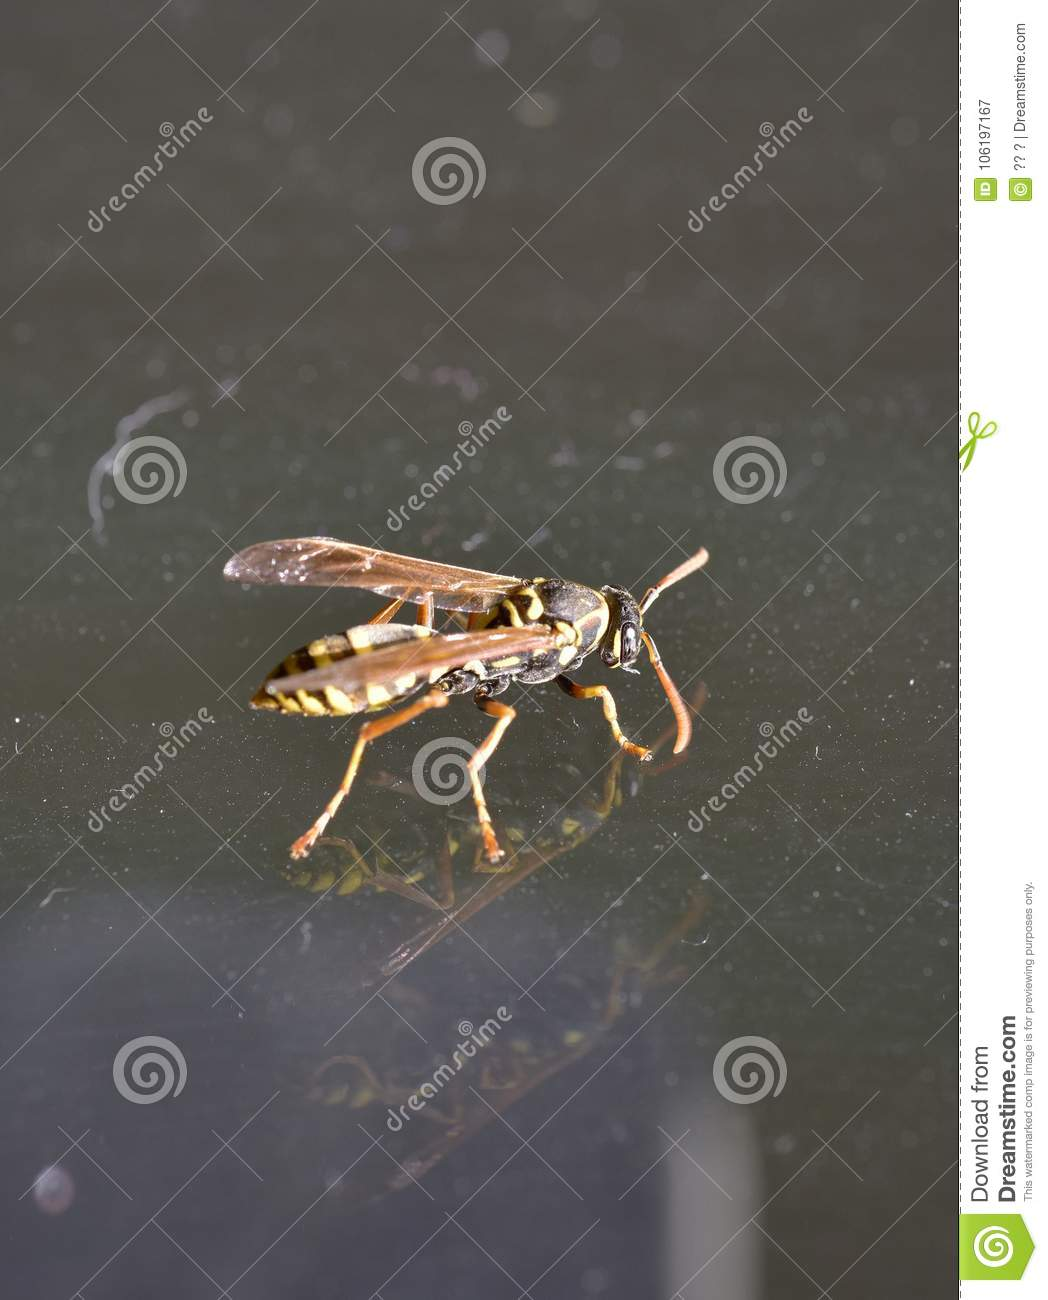 A wasp flying into the room